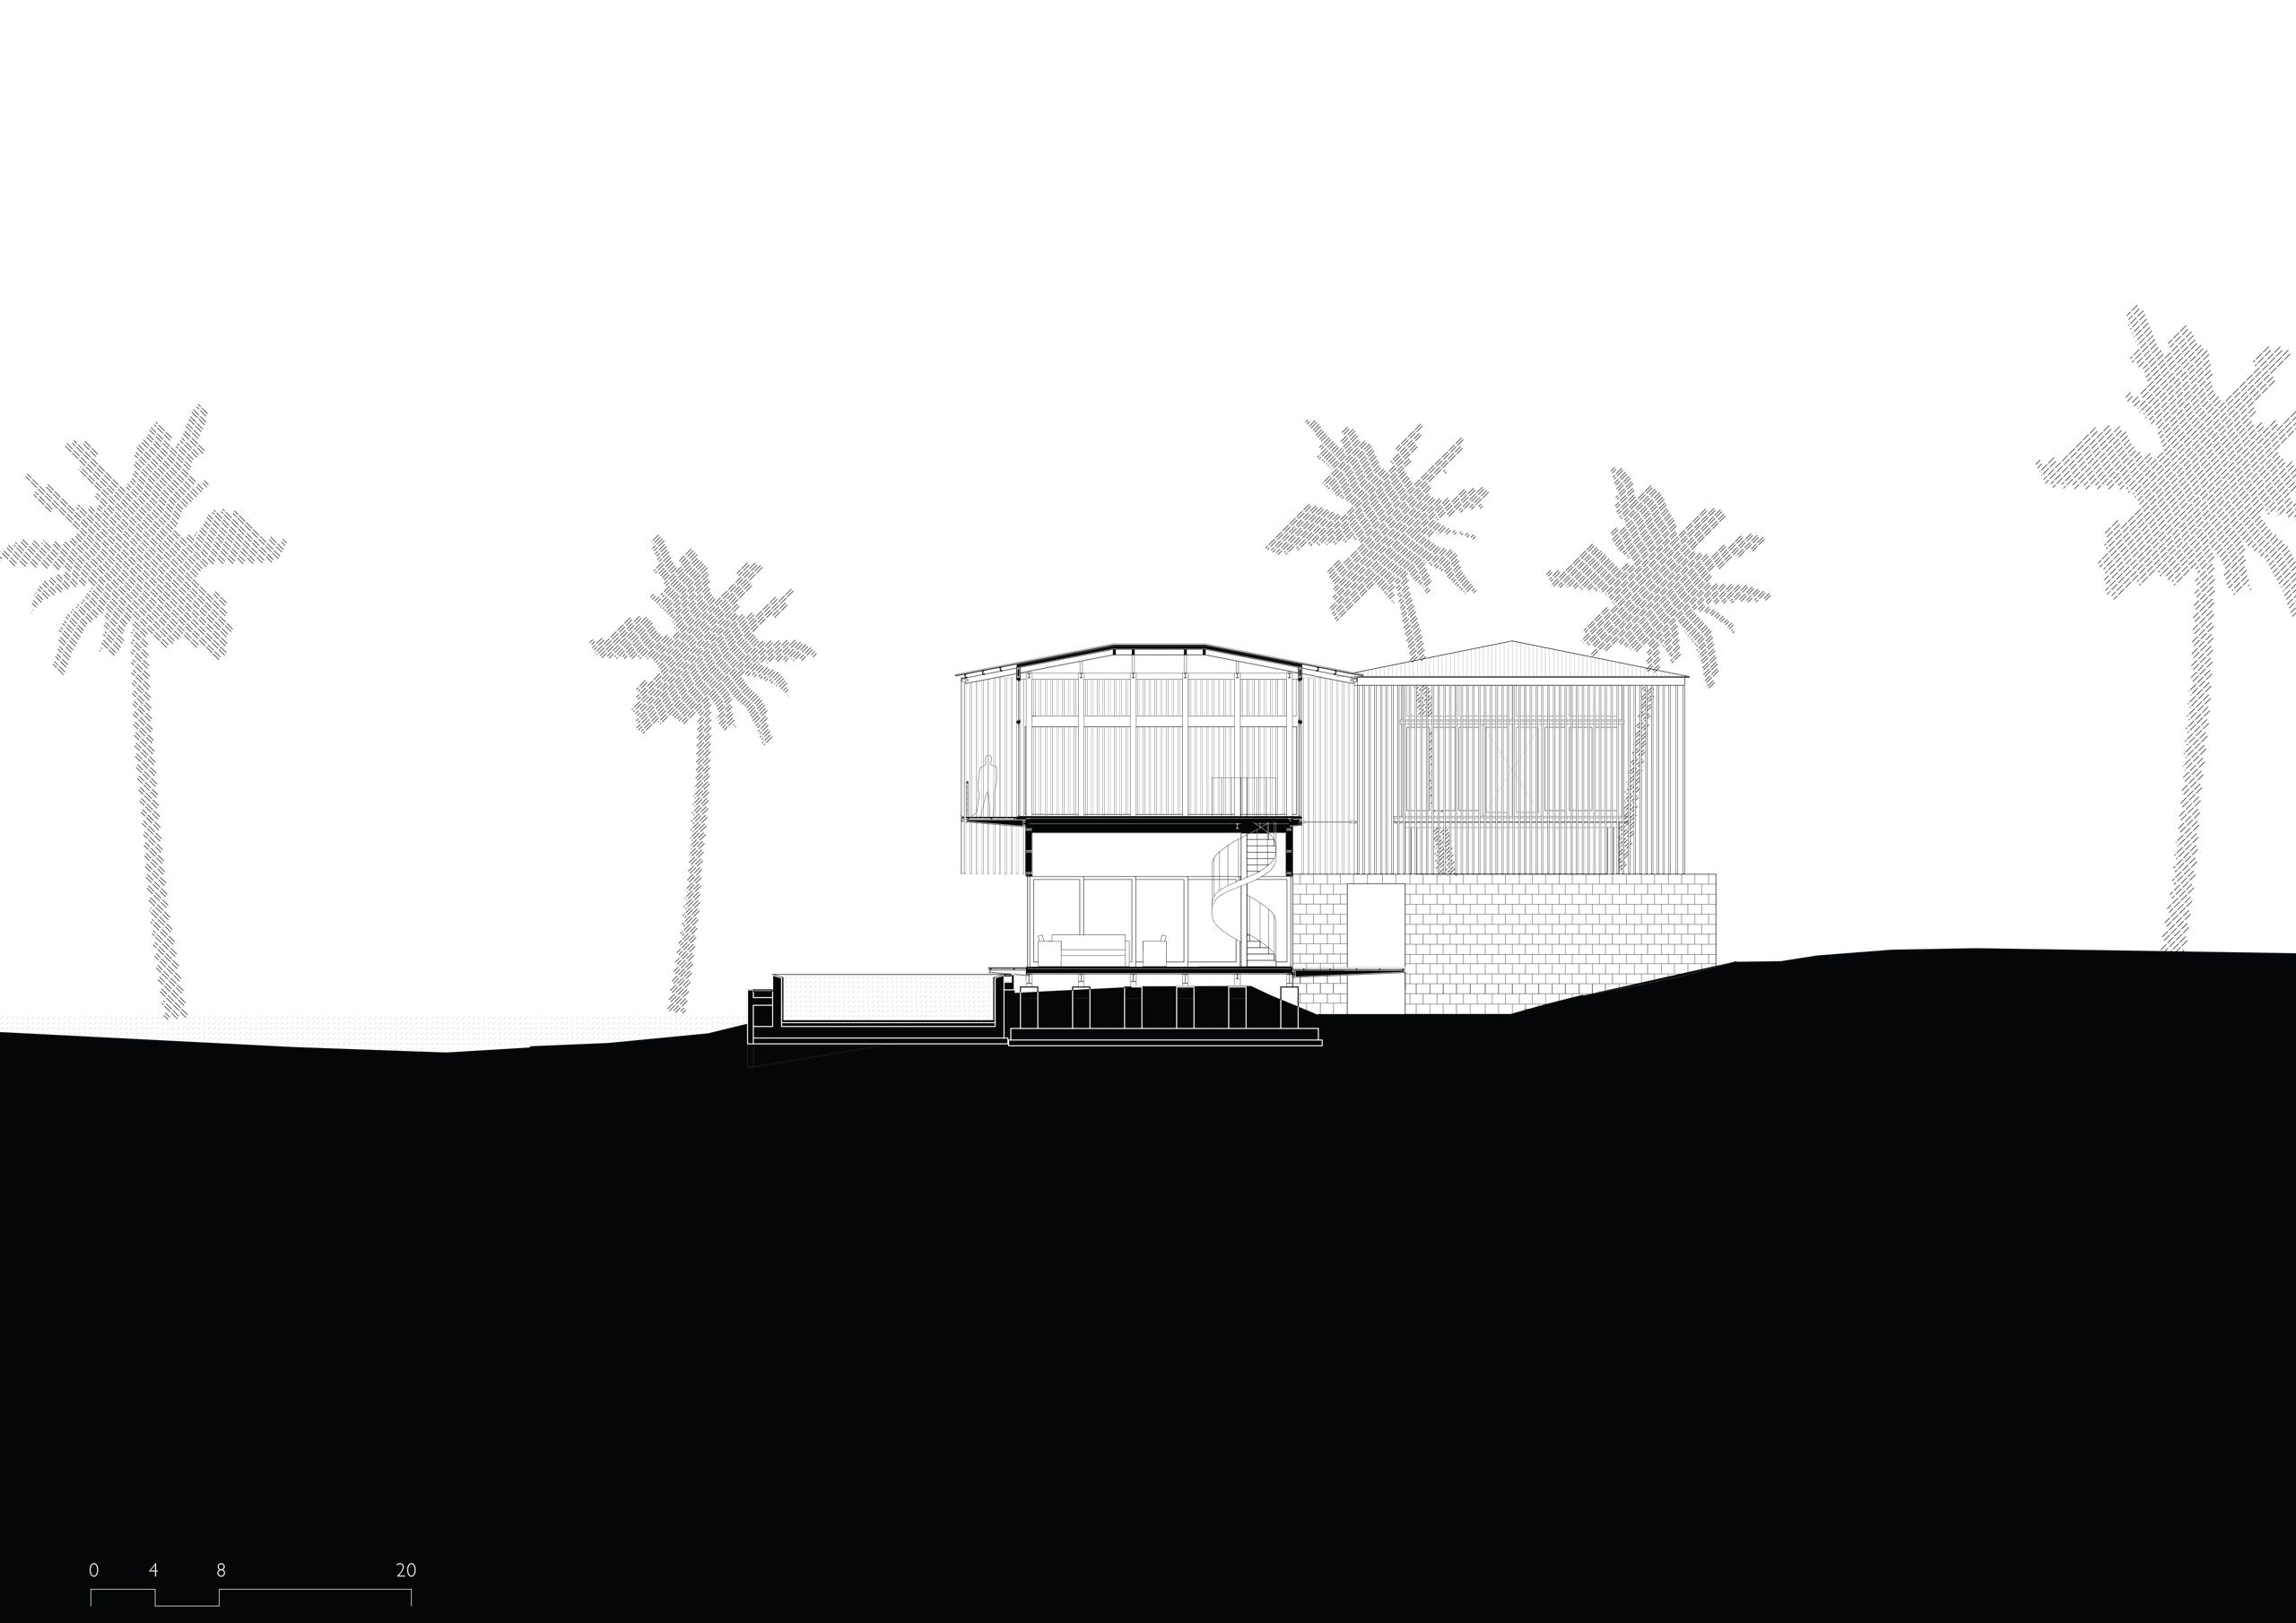 The stilted pavilions of the resort sit light on the landscape in contrast the laterite courtyard walls, which tie these pavilions into the land. #architecturedrawing #section #blackandwhite #hoteldesigner #hospitalitydesigner #luxuryhoteldesign #luxuryhotelsworld #traveldesign #boutiquehotels #boutiquehoteldesign